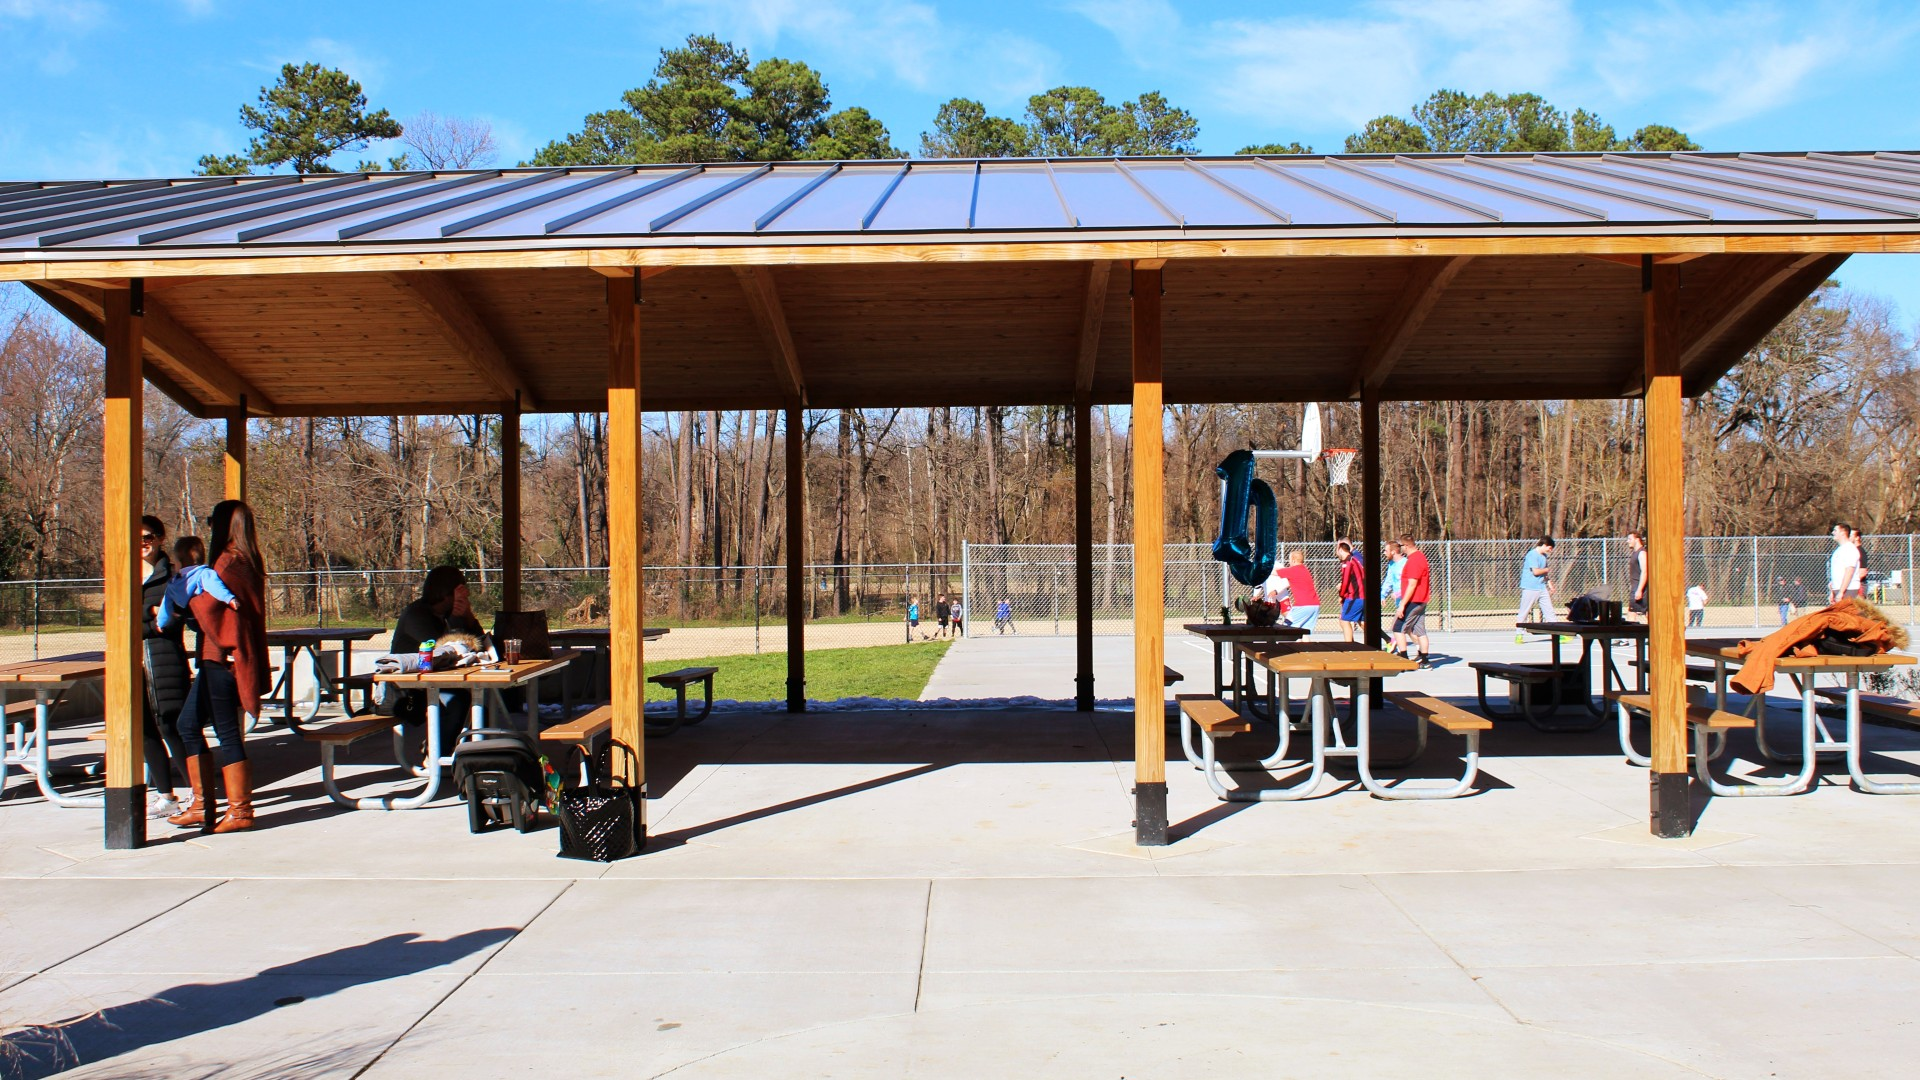 A large open picnic shelter that can accommodate up to 80